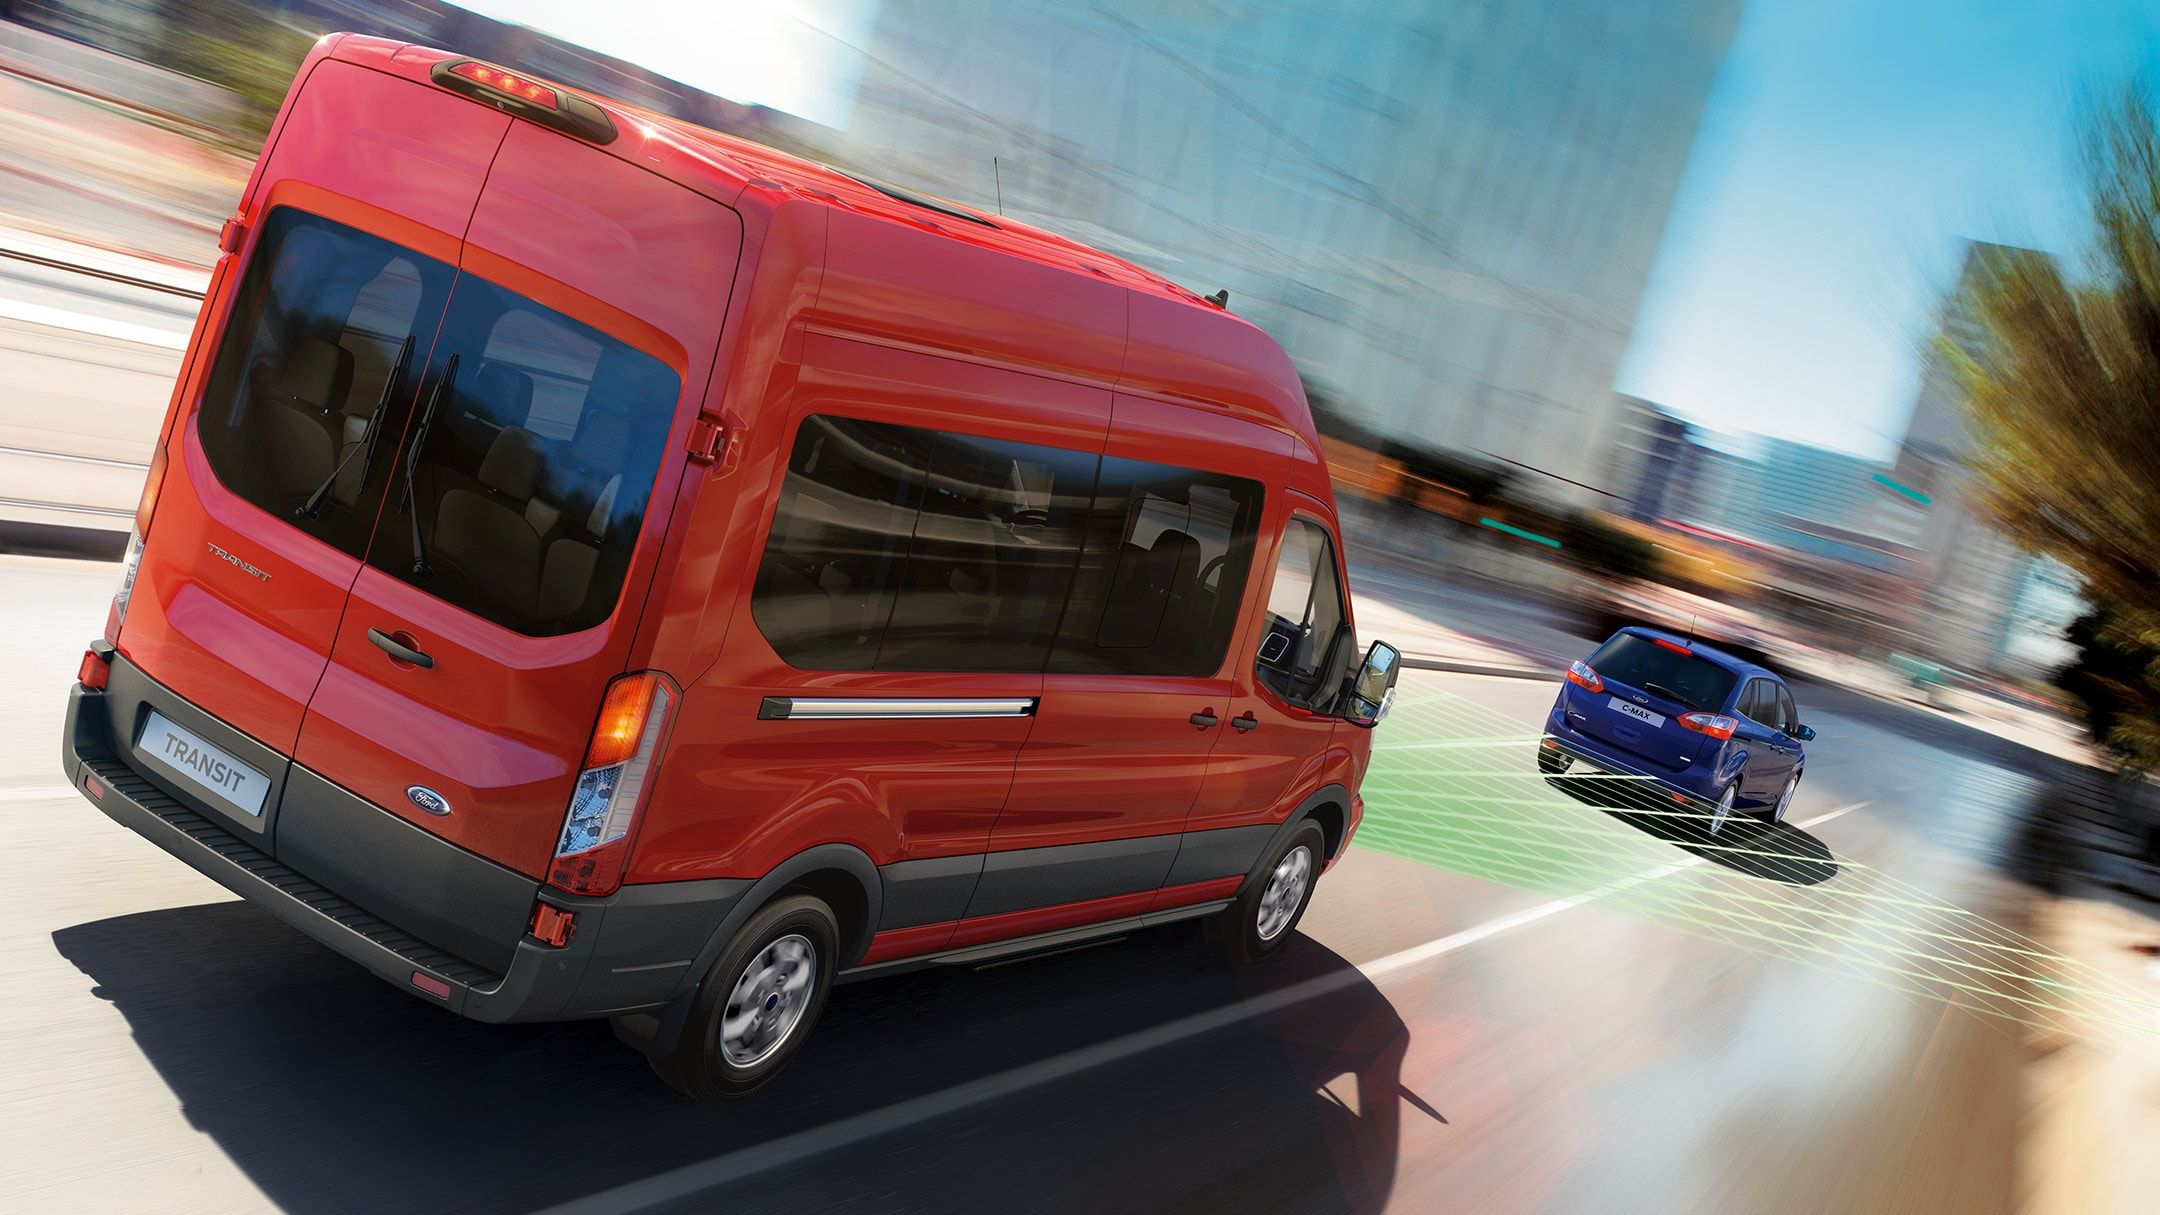 Ford Transit Minibus trailing another car with Adaptive Cruise Control